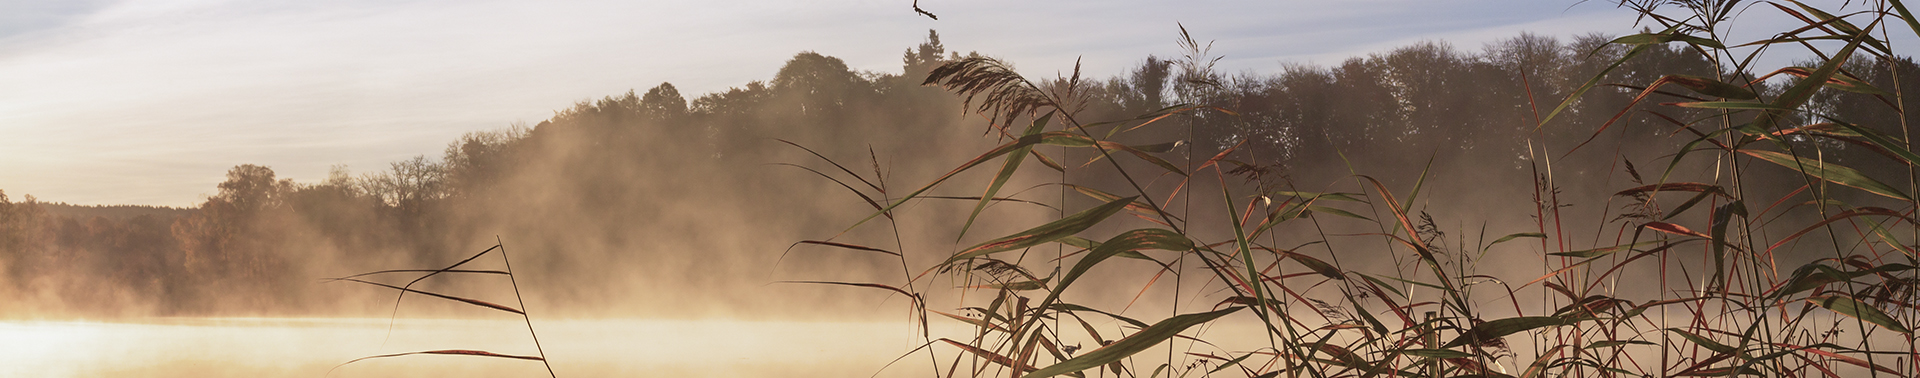 Wellspring Center of Counseling Services - Steam rising from lake at sunrise